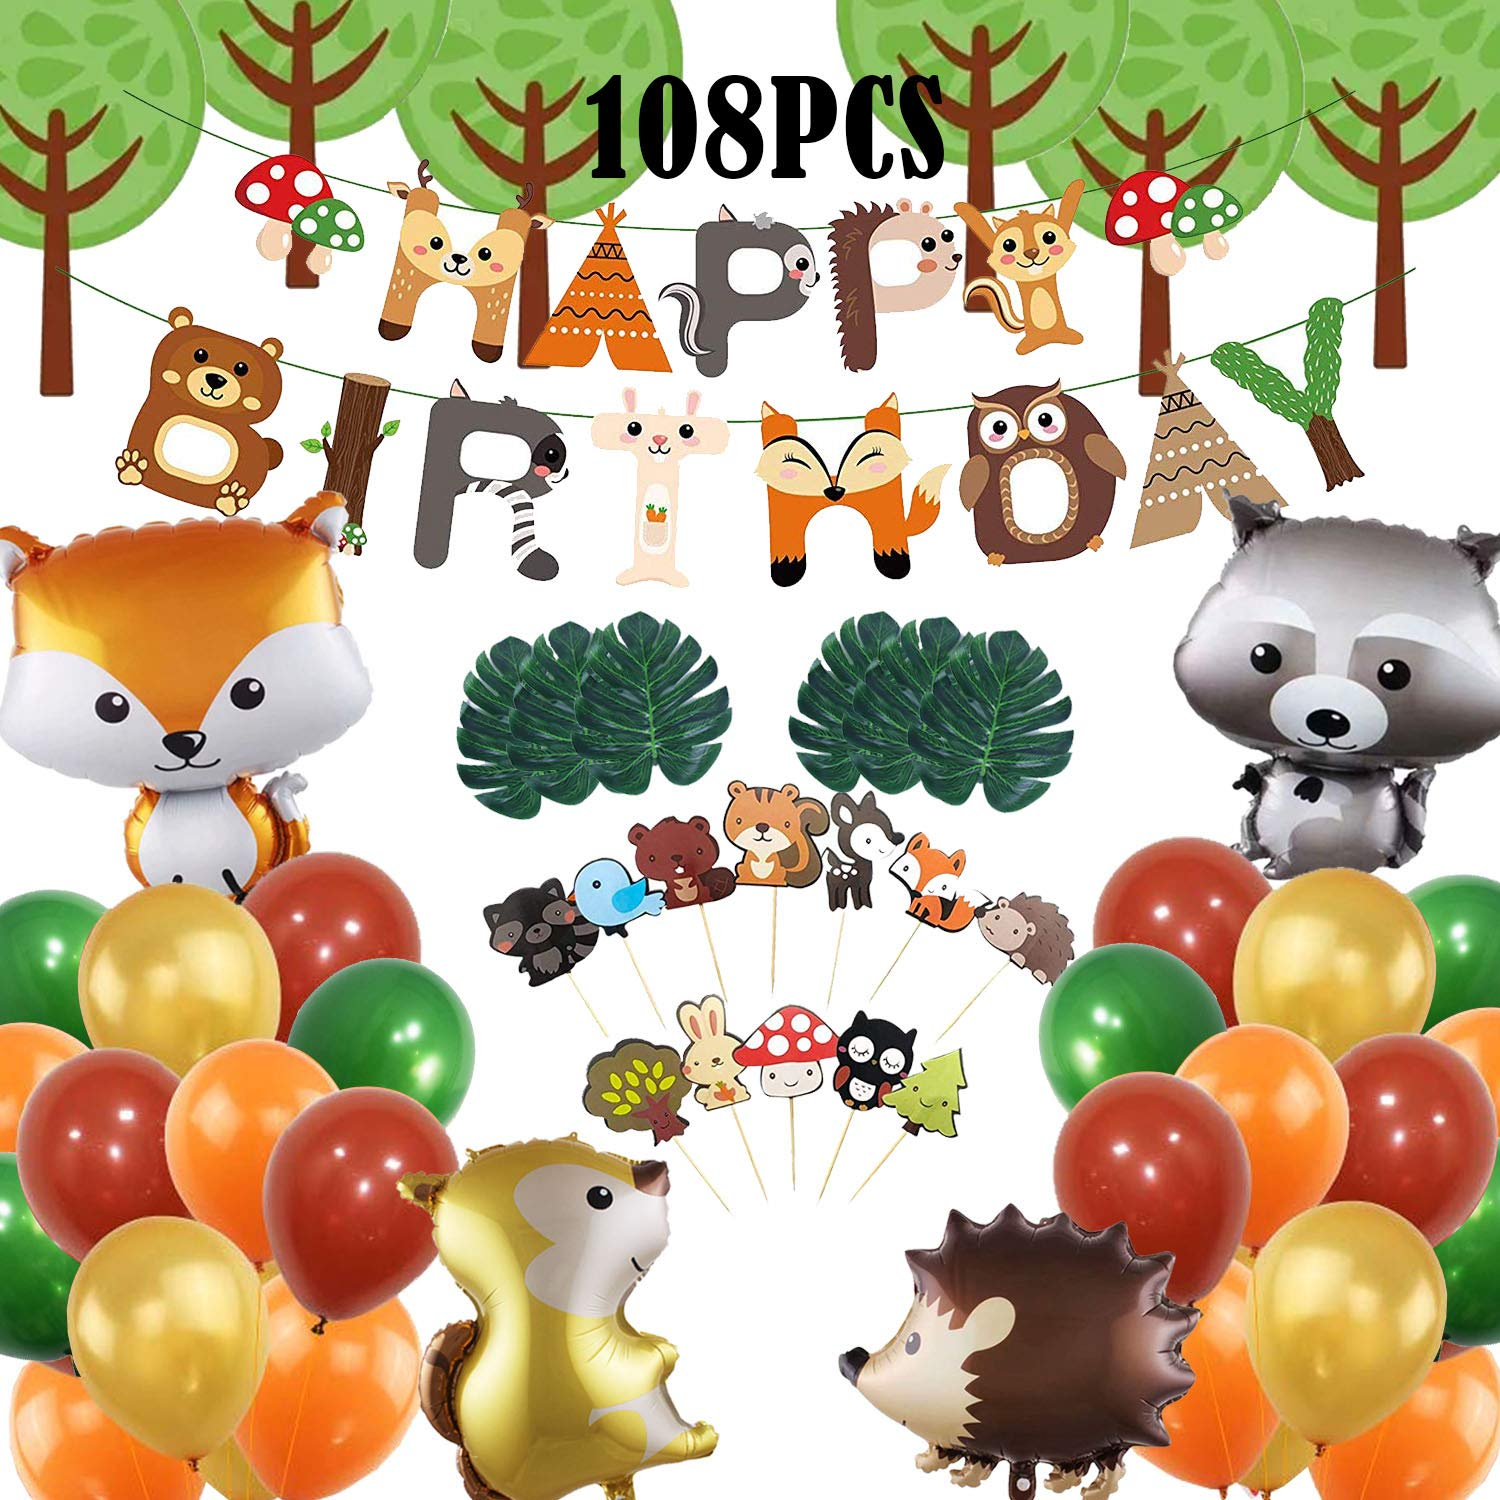 108-Pack Woodland Animals Baby Shower Decorations, Woodland Creatures Balloon,Woodland Party   Supplies Woodland Party Decorations